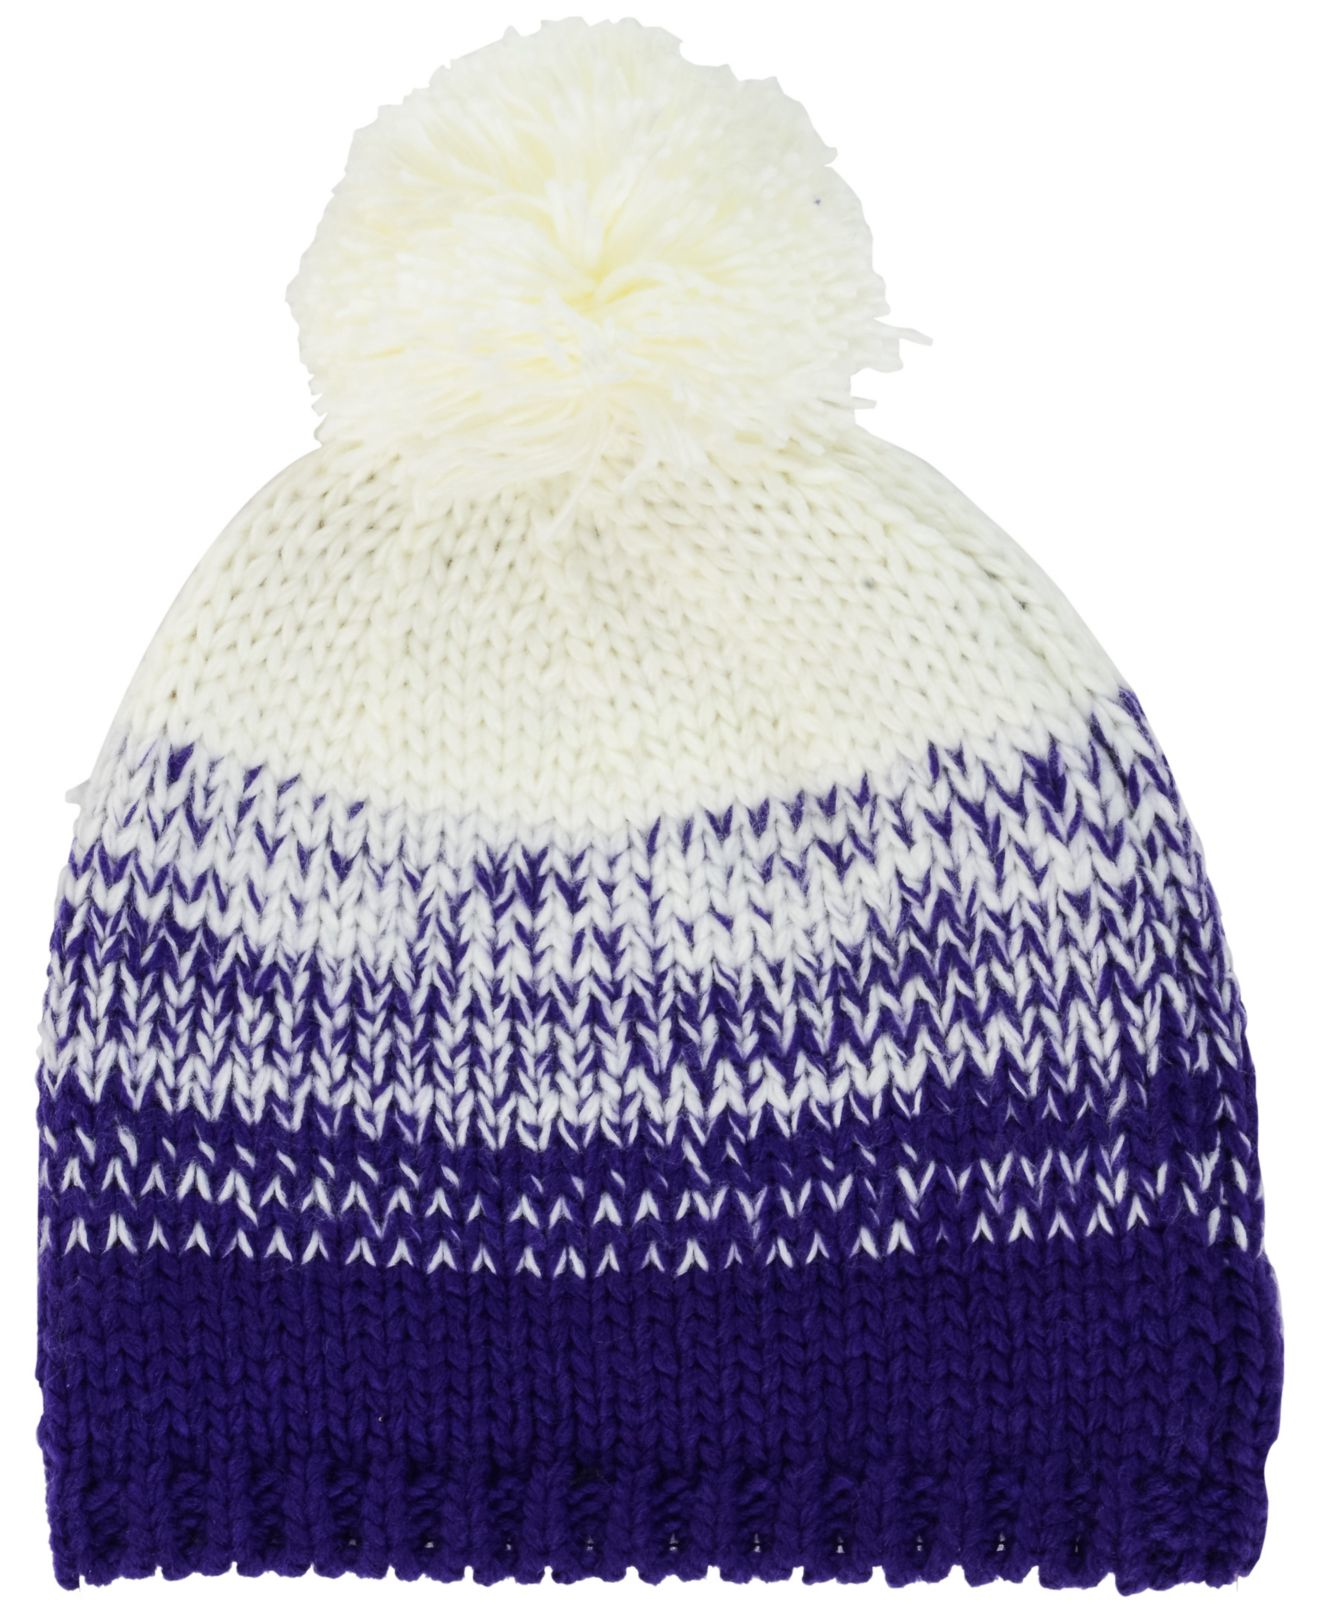 Lyst - KTZ Women s Minnesota Vikings Polar Dust Knit Hat in White 0cb92f568